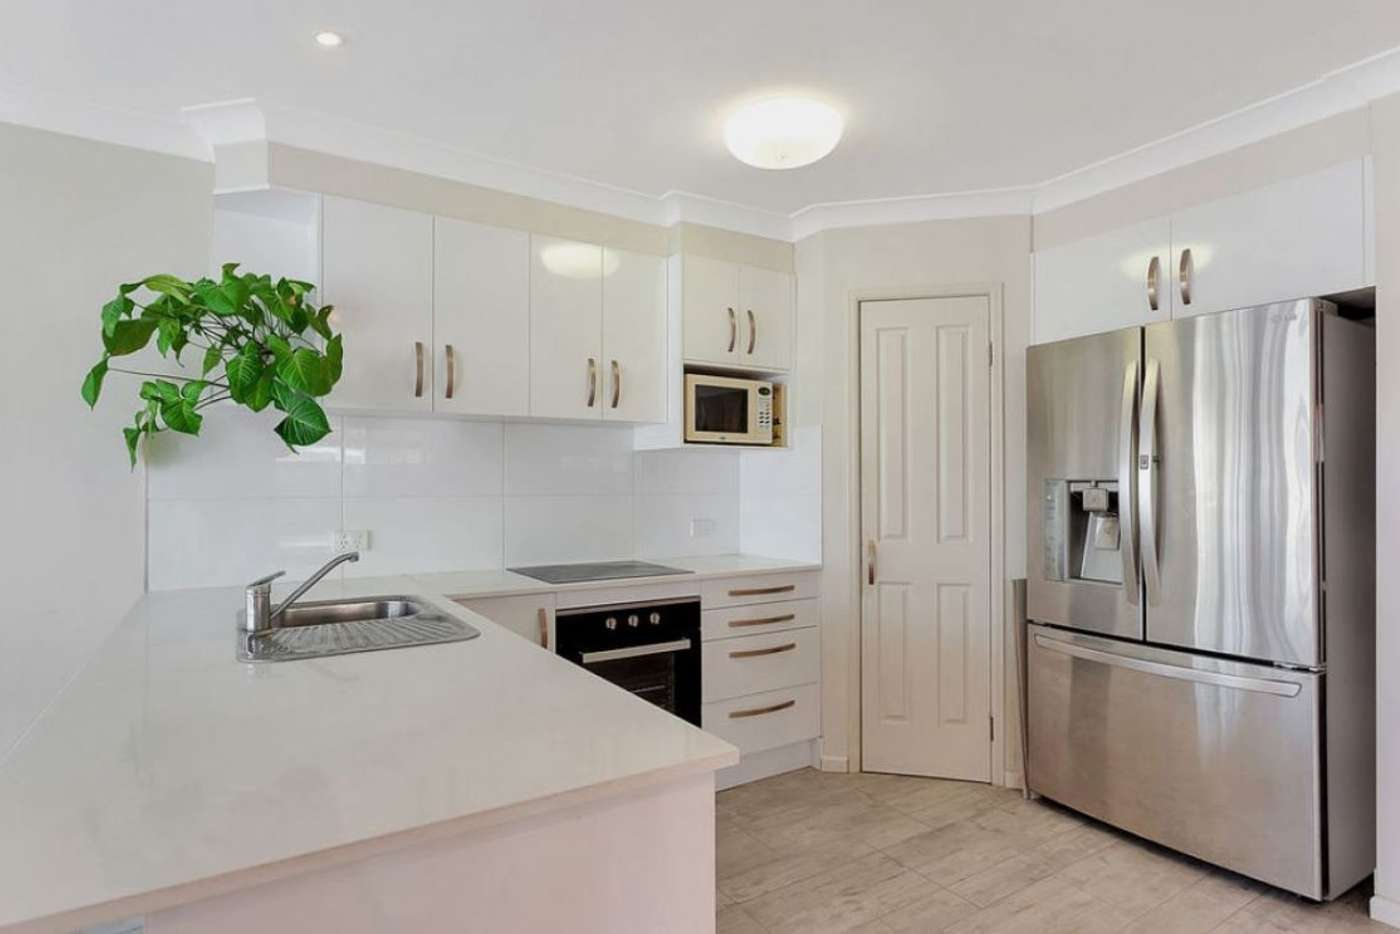 Sixth view of Homely house listing, 44 Aruma Avenue, Burleigh Waters QLD 4220